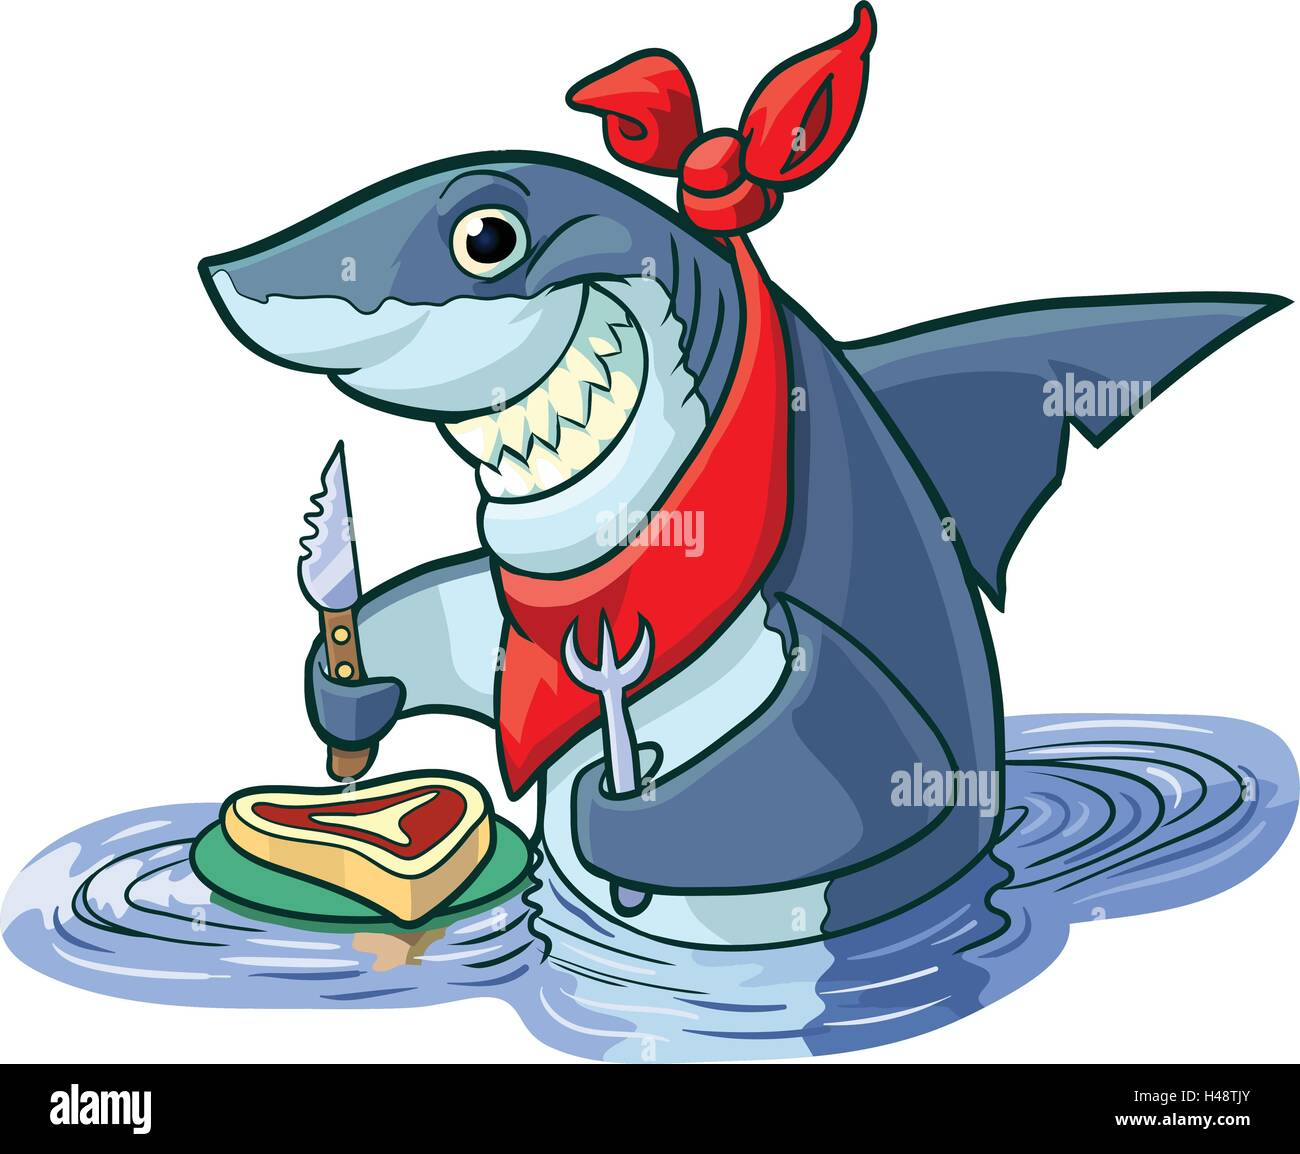 vector cartoon clip art illustration of a cute happy smiling shark